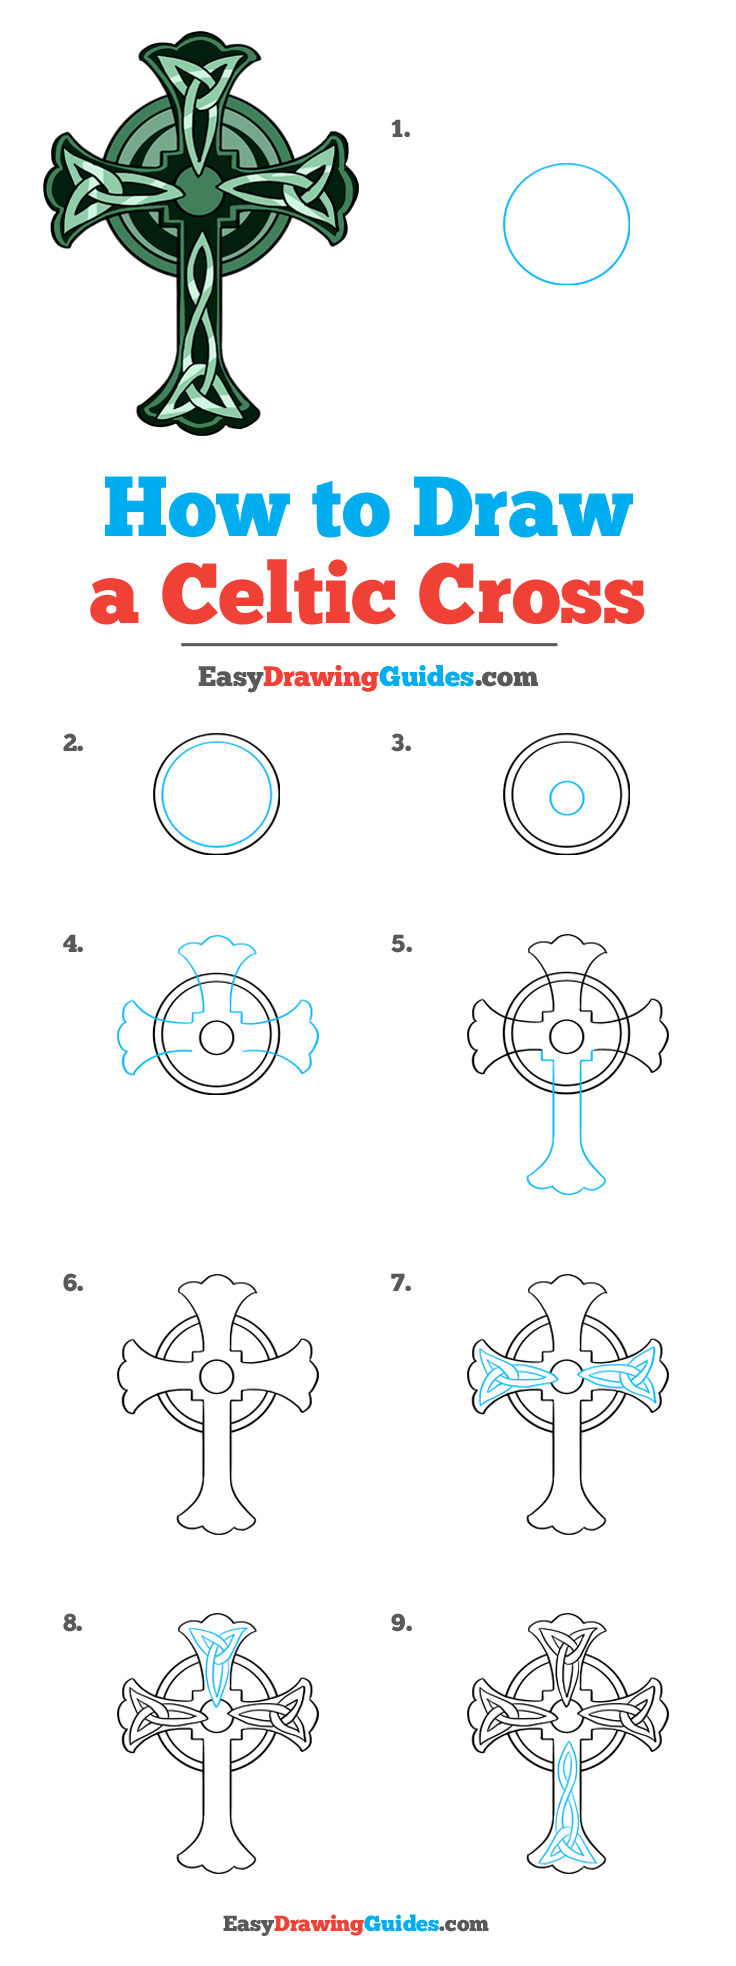 How To Draw A Cross Step By Step : cross, Celtic, Cross, Really, Drawing, Tutorial